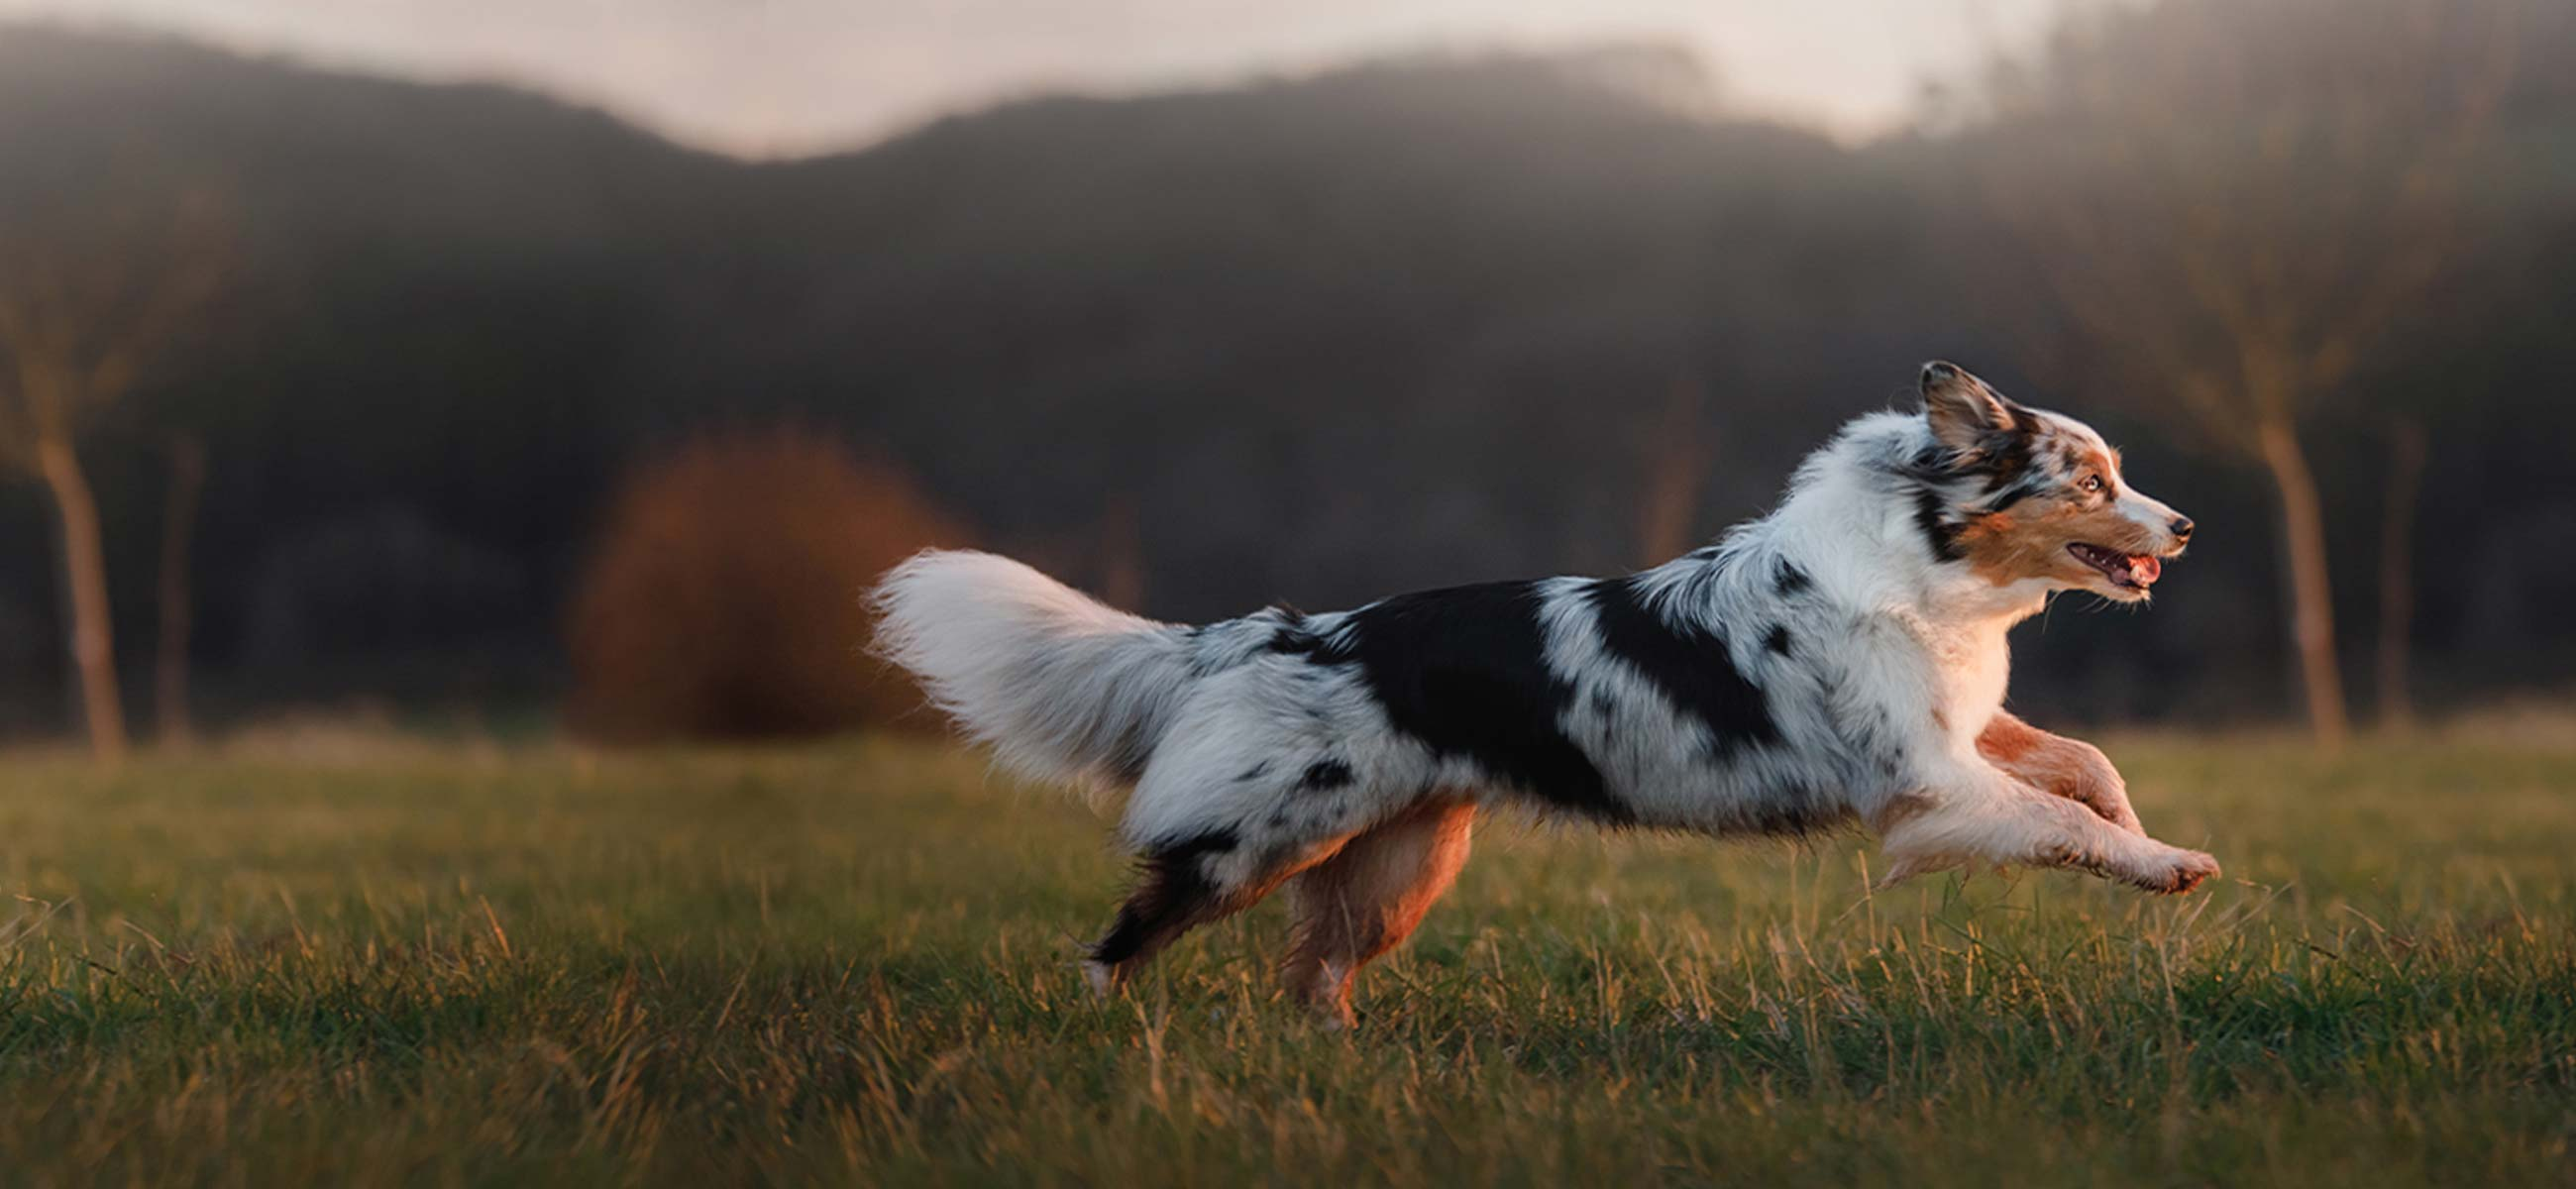 Australian shepherd running in field at dusk